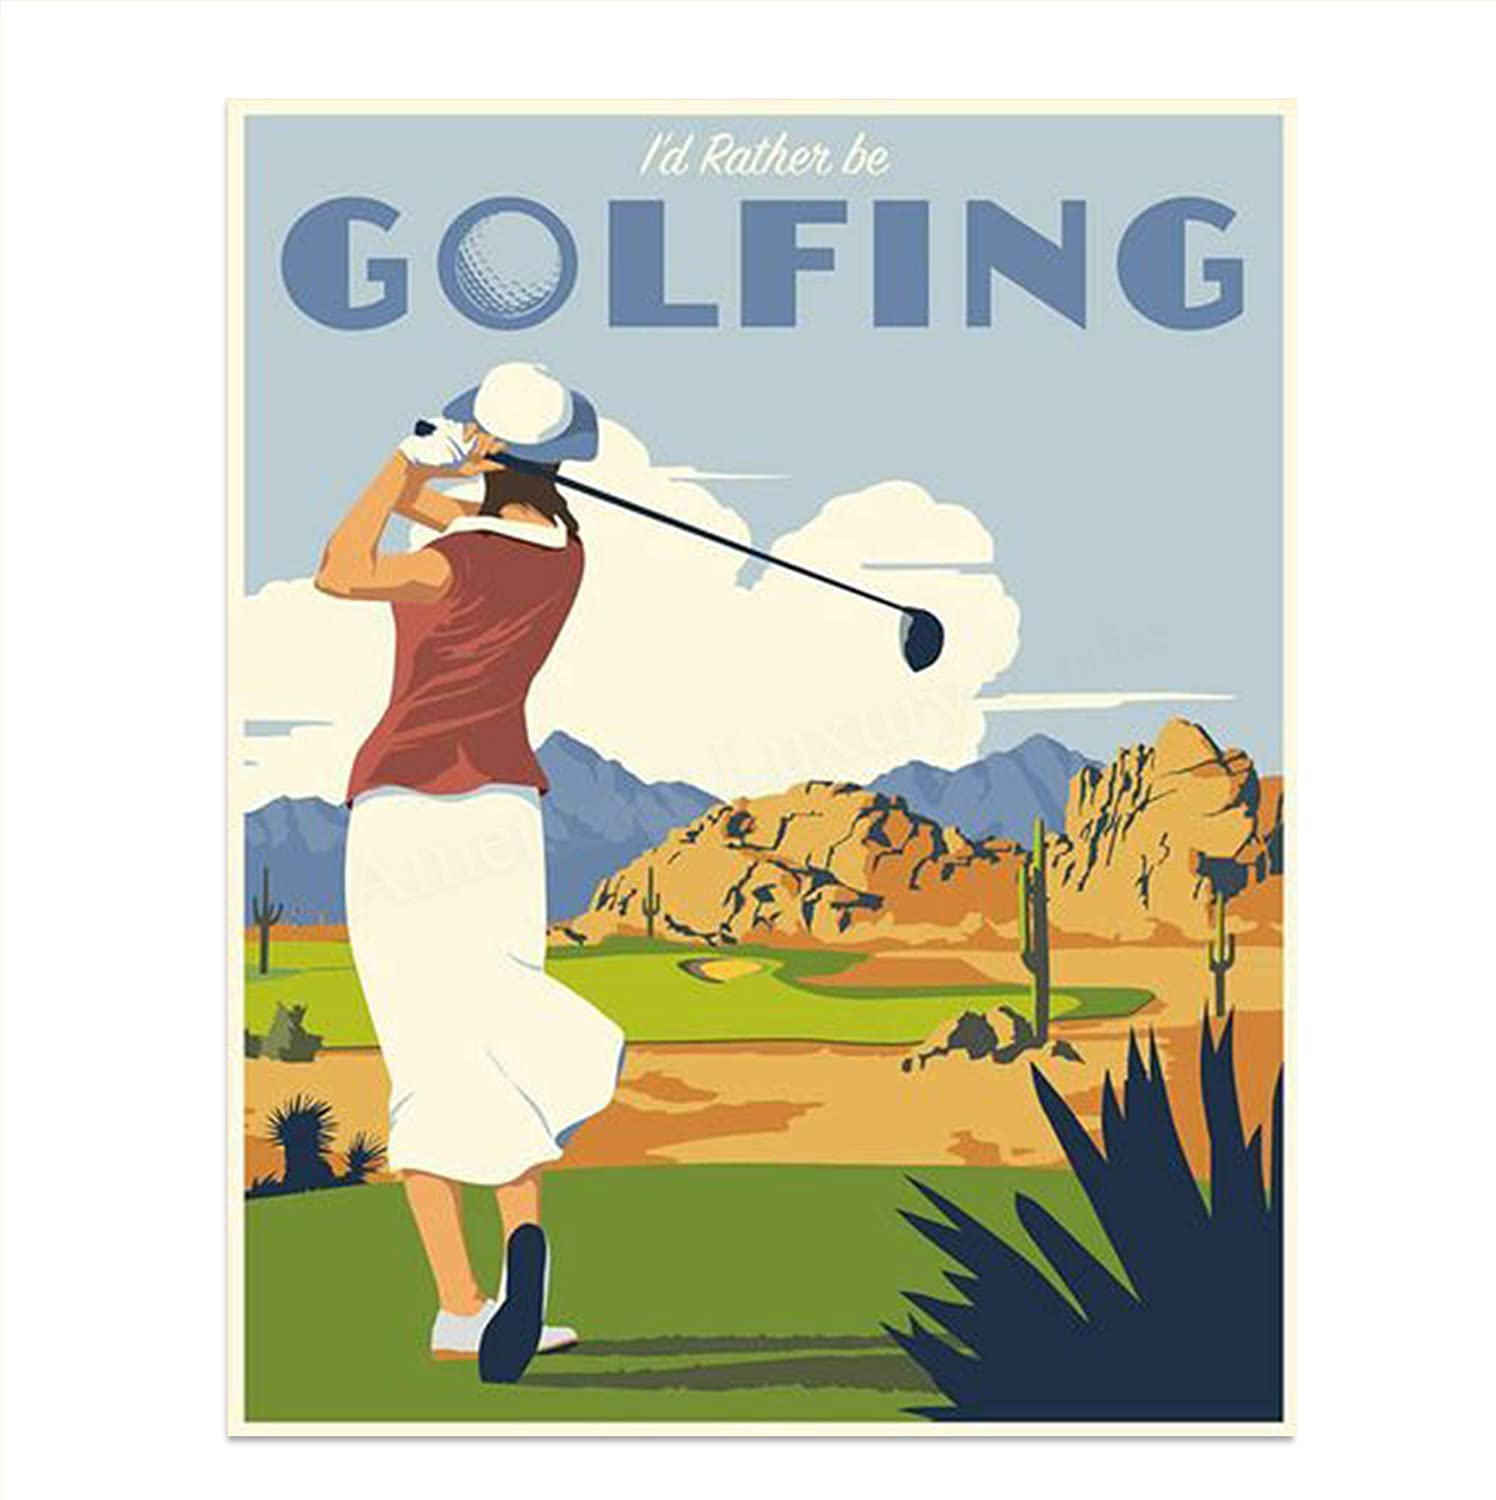 "Woman Golfer On The Tee- Vintage Sign Print- 8 x10""-""I'd Rather Be Golfing""- Retro Golf Art Sign Replicas- Ready To Frame. Home-Office-Club House Decor. Great Gift and Woman Cave-Bar-19th Hole Art."